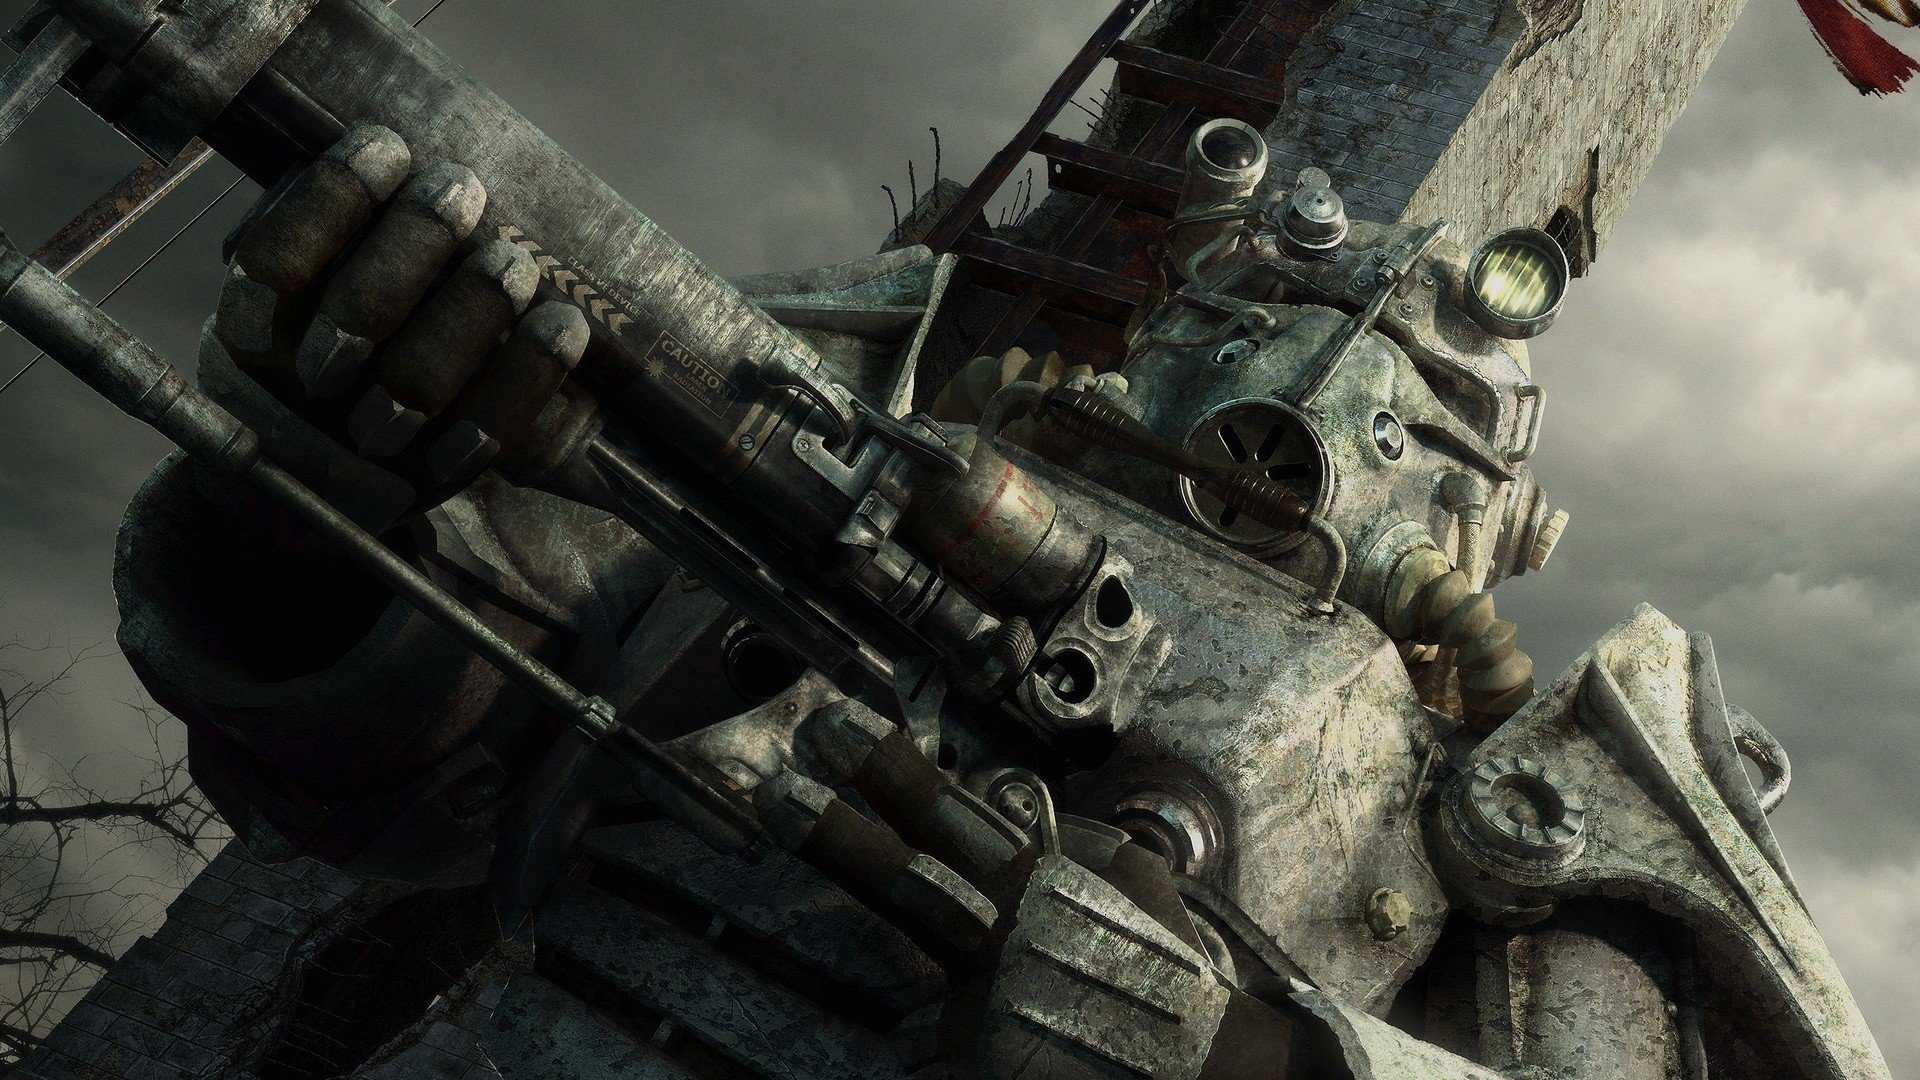 CGI Brotherhood Of Steel Fallout 3 washington monument wallpaper 1920x1080